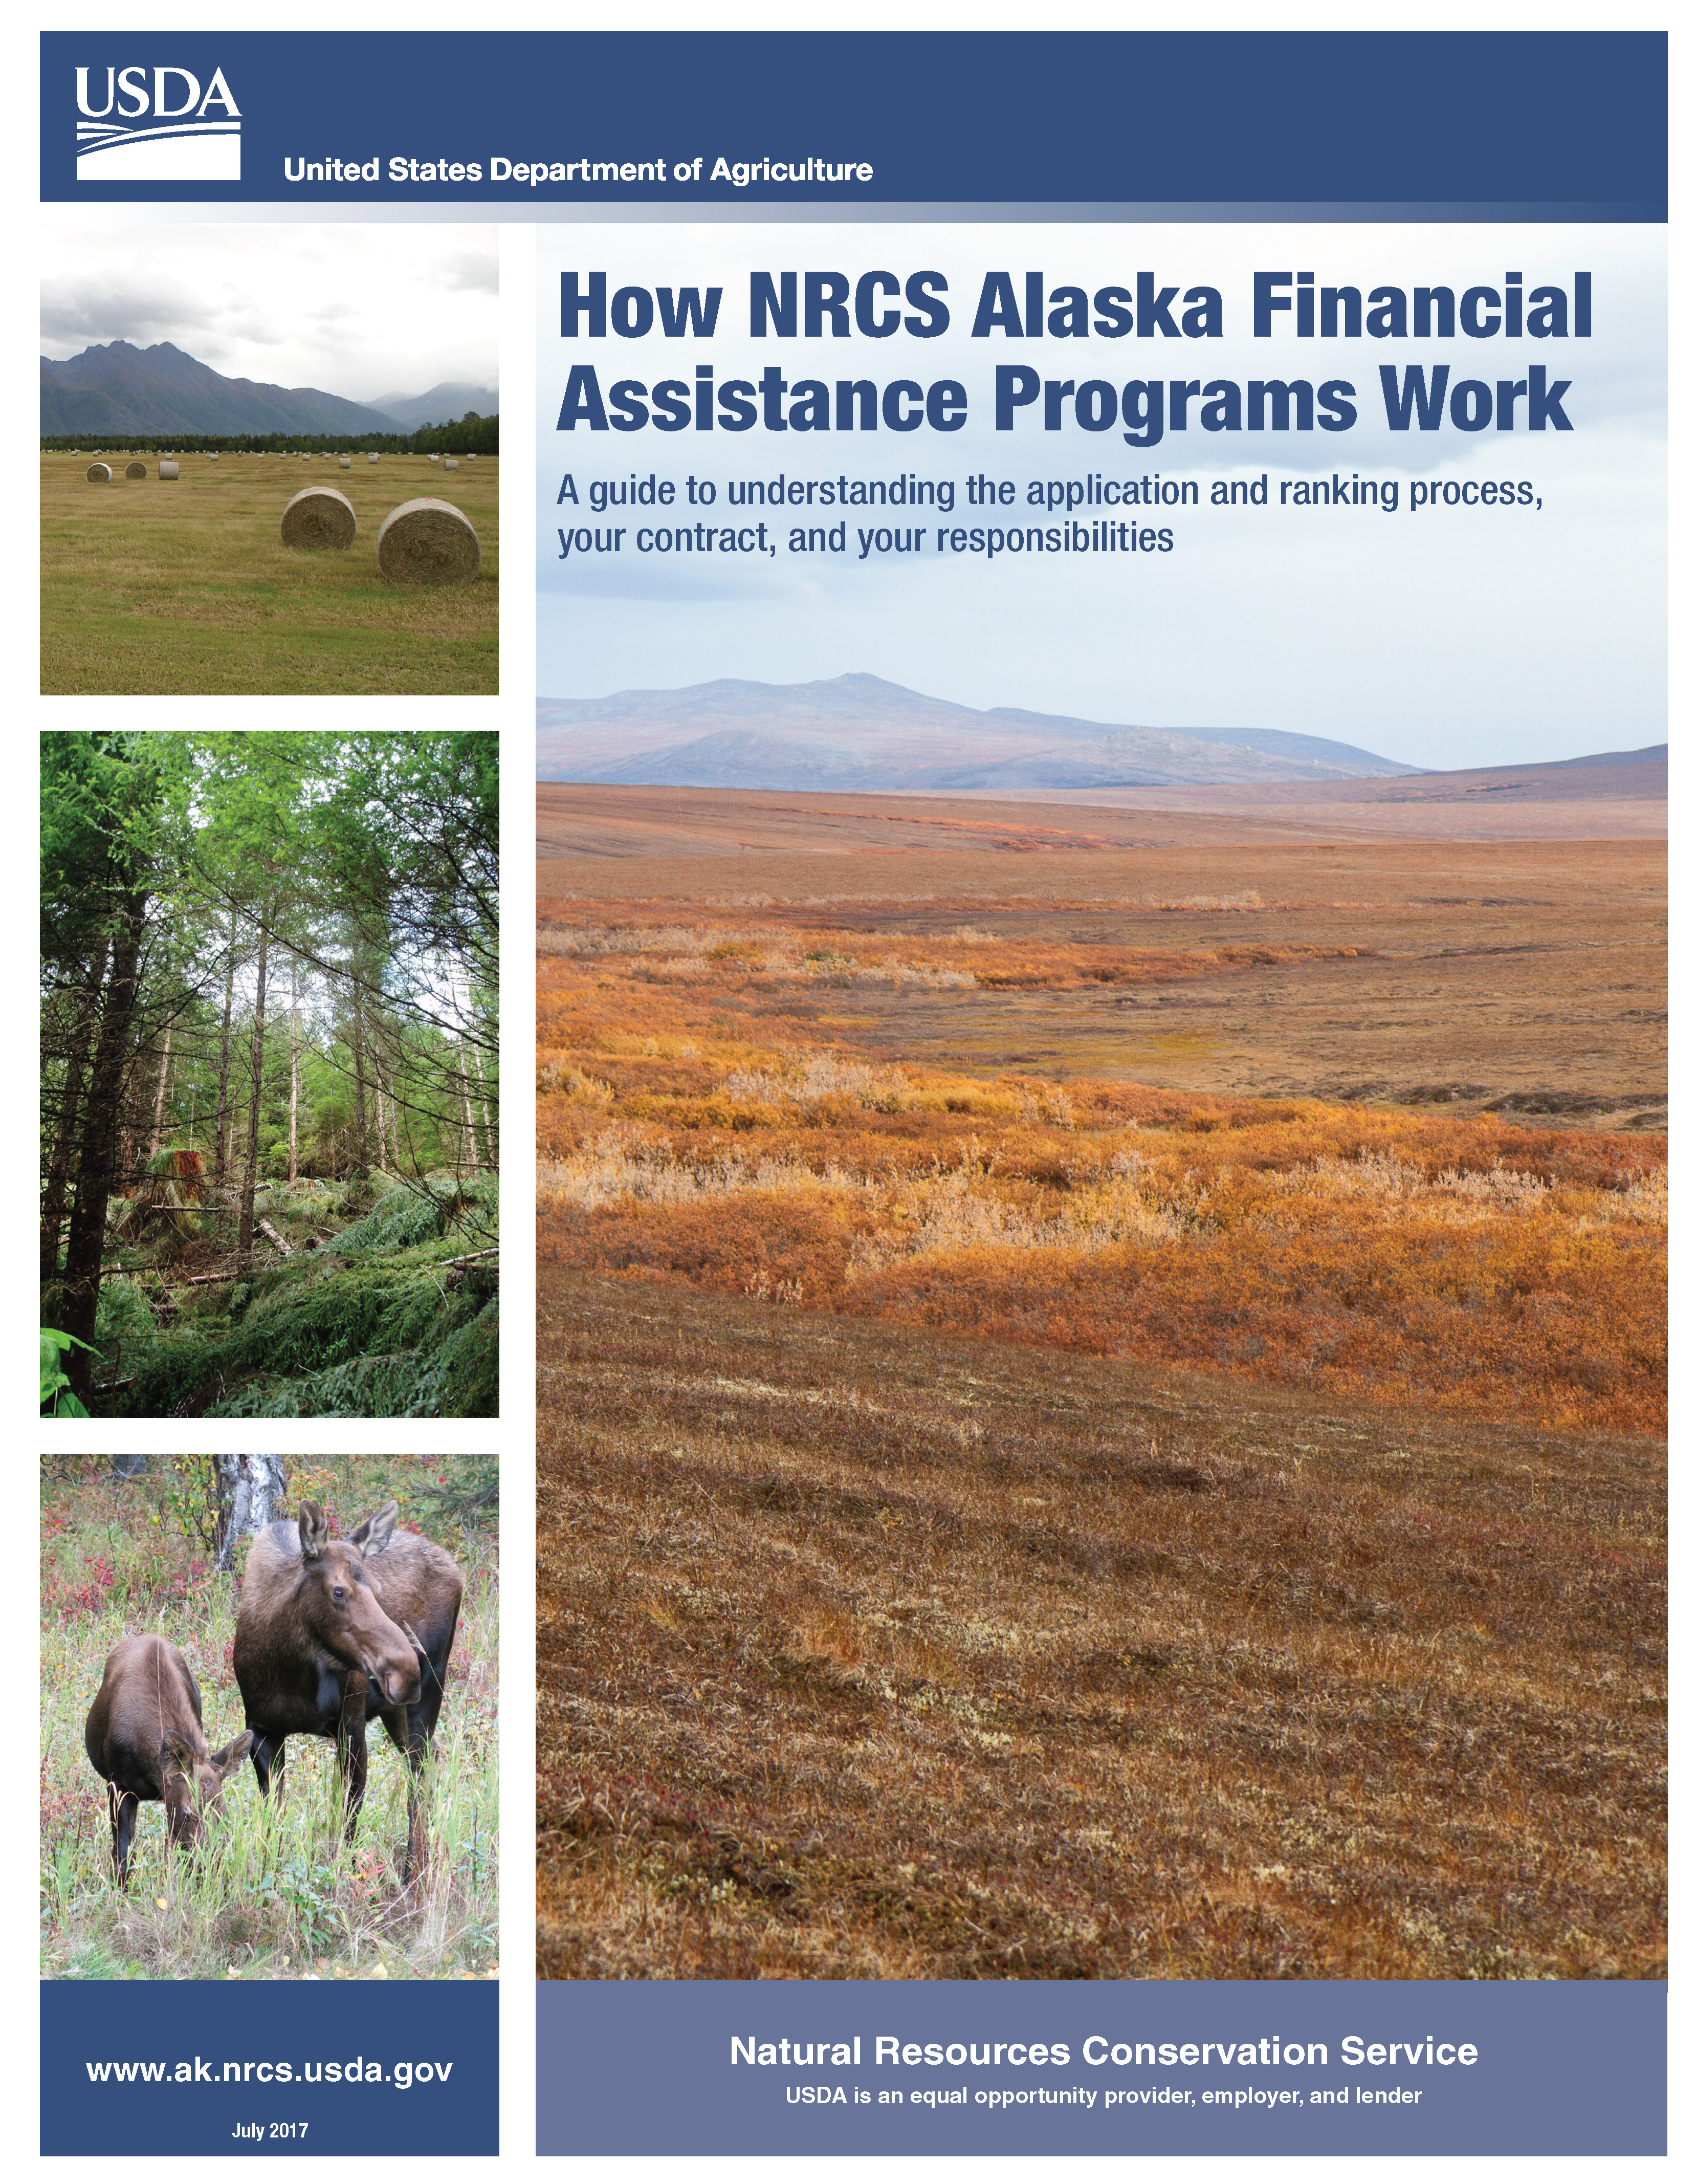 How NRCS Financial Assistance Programs Work